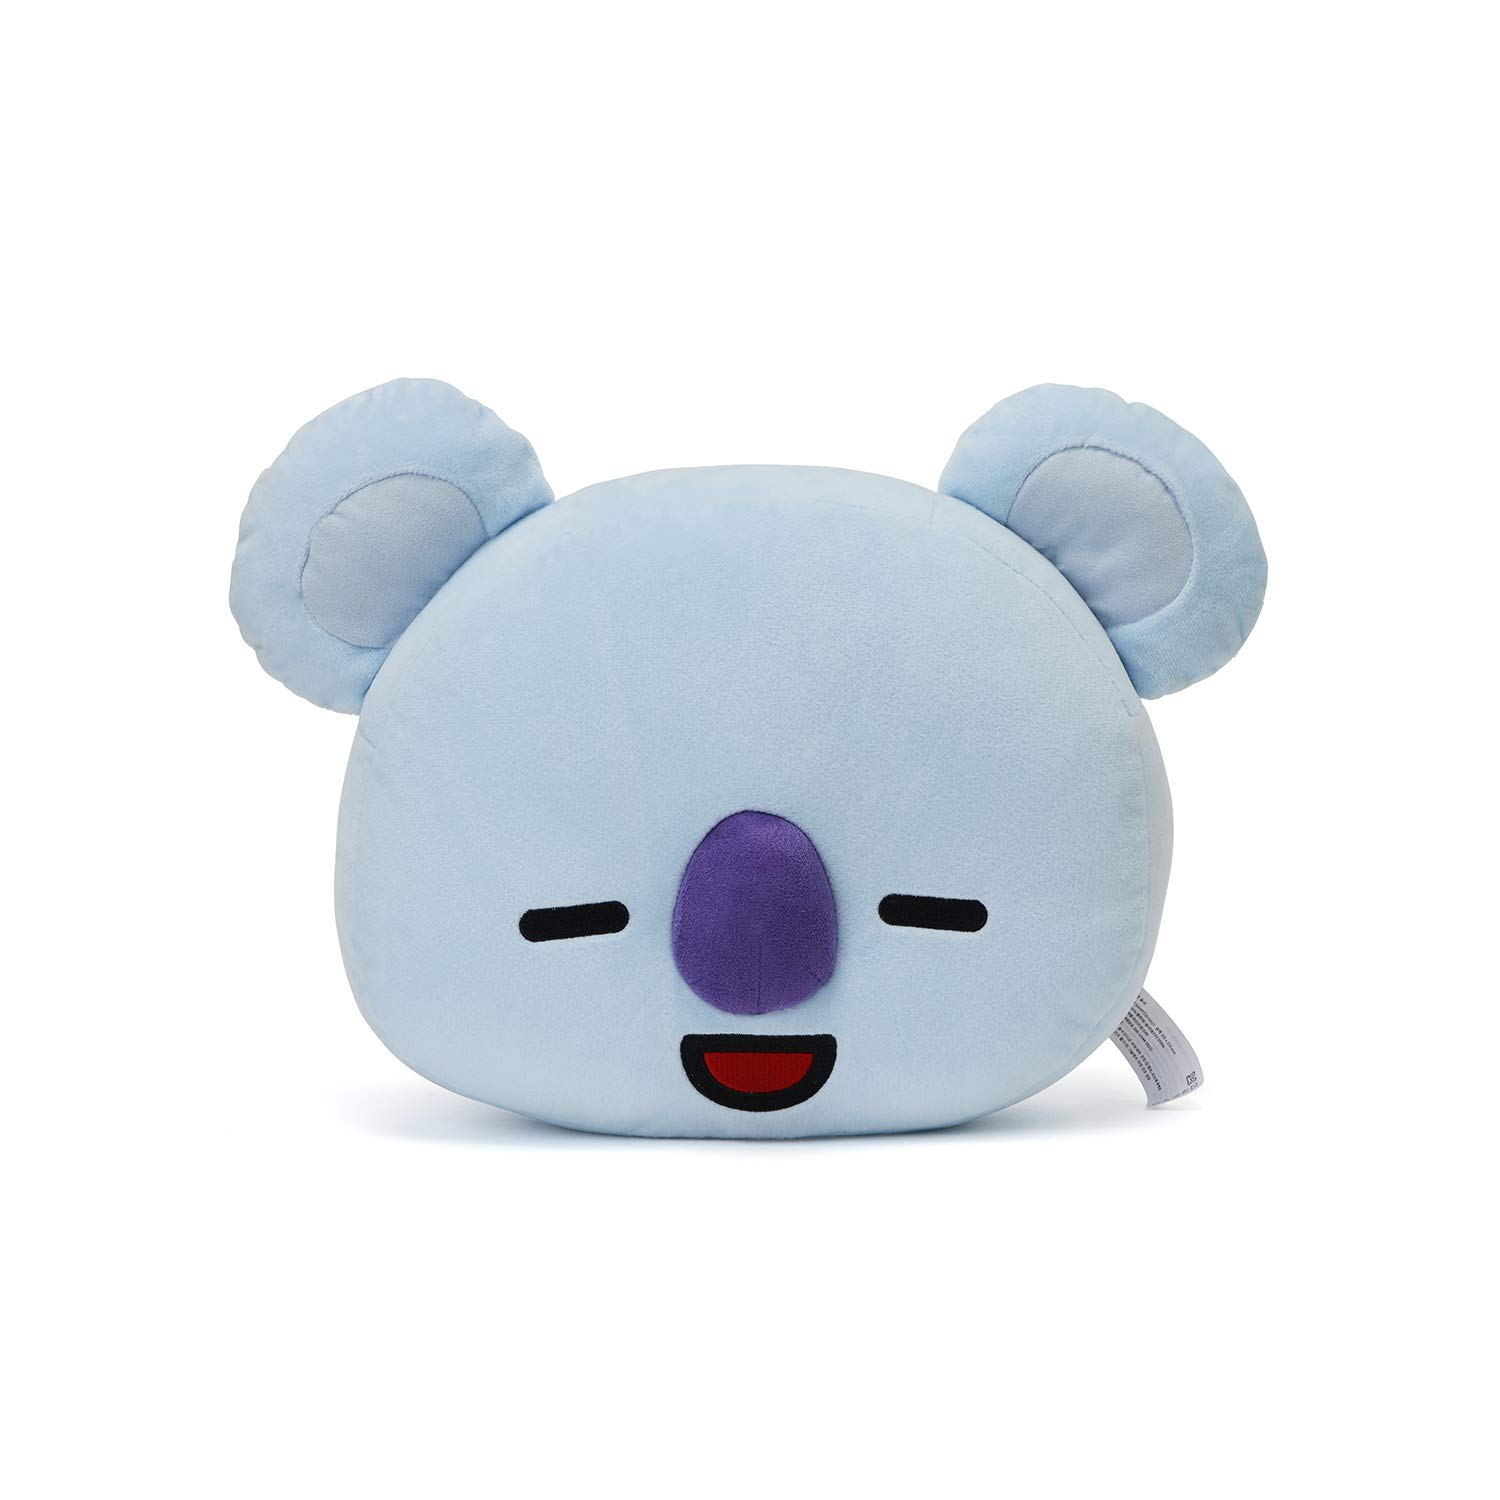 LINE FRIENDS BT21 Official Merchandise KOYA Smile Decorative Throw Pillows Cushion, 16.5 Inch